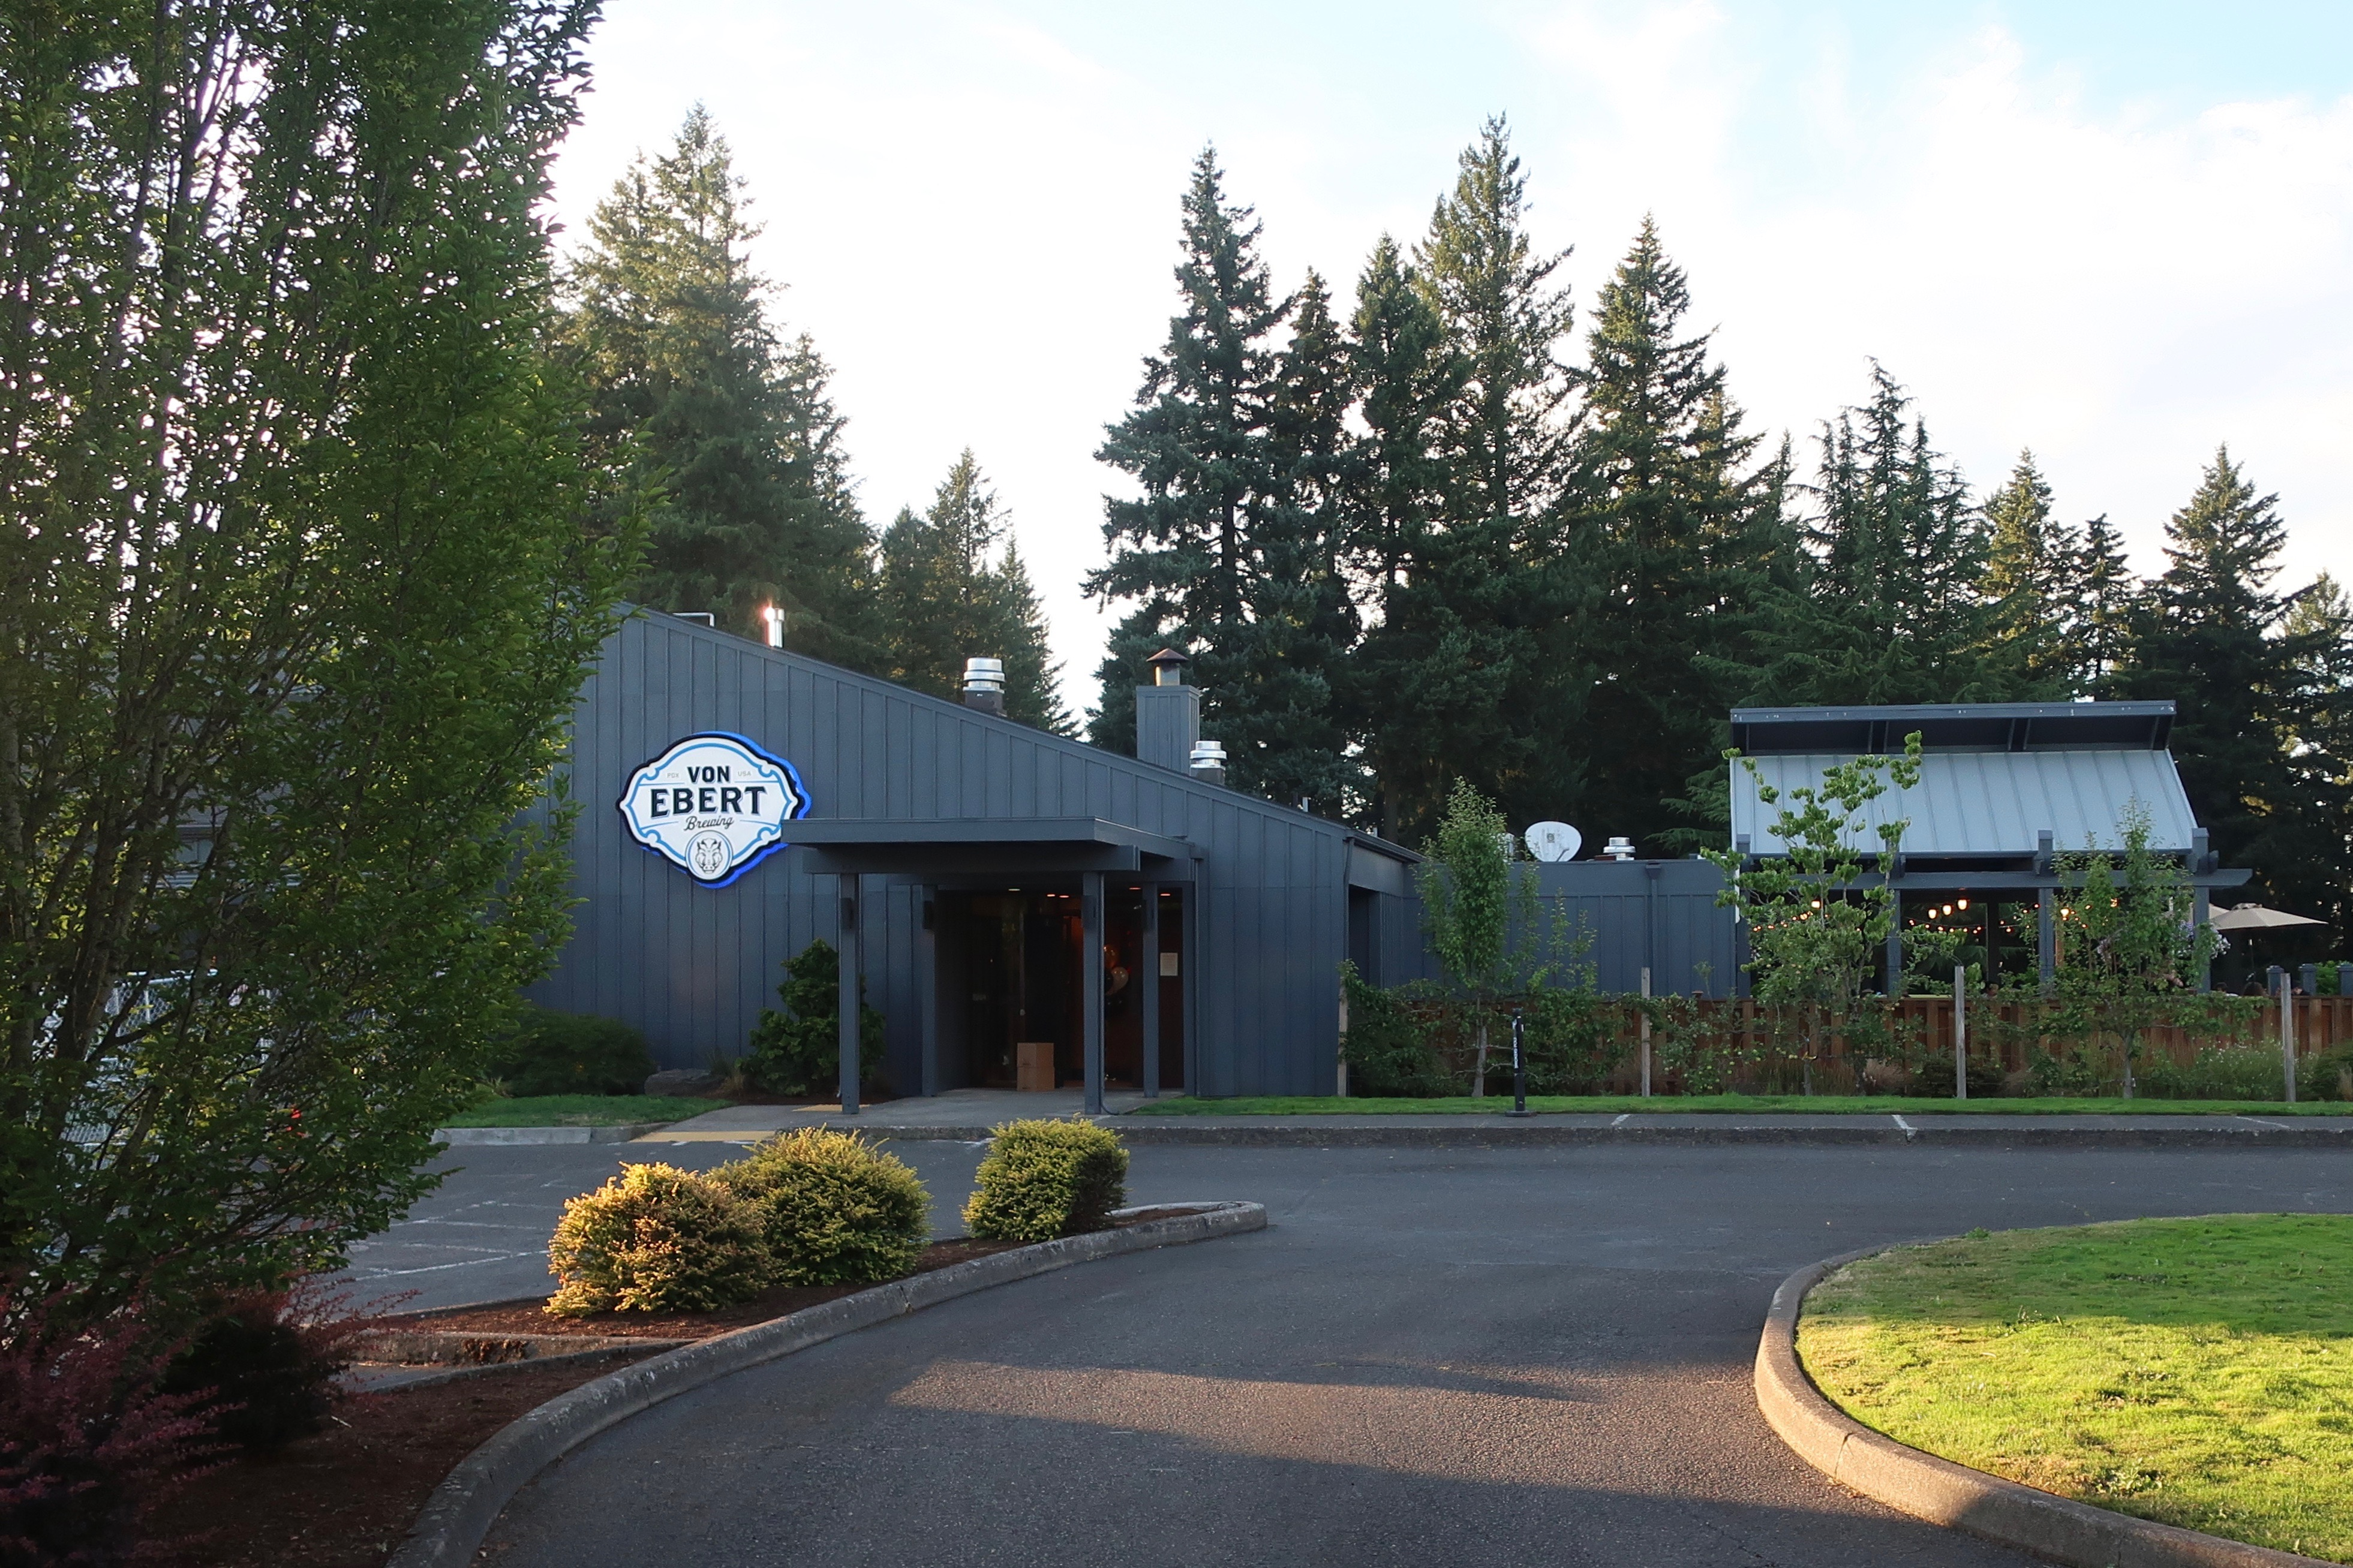 Von Ebert Brewing - East located at Glendoveer Golf Course.